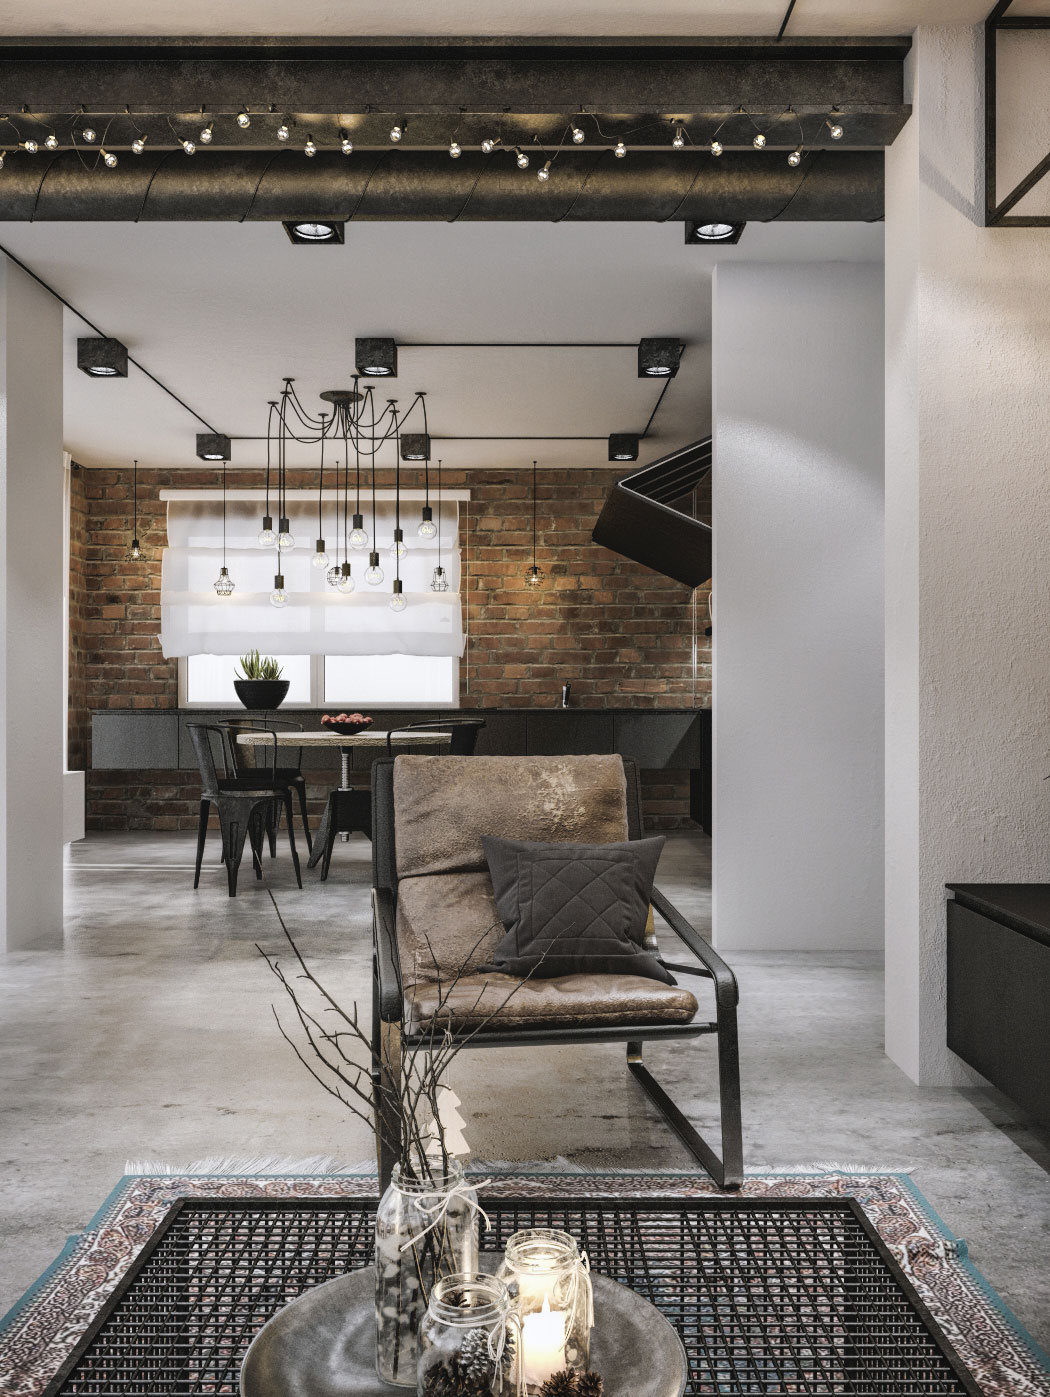 Exposed brick walls and Edison bulb lighting for the industrial dining room